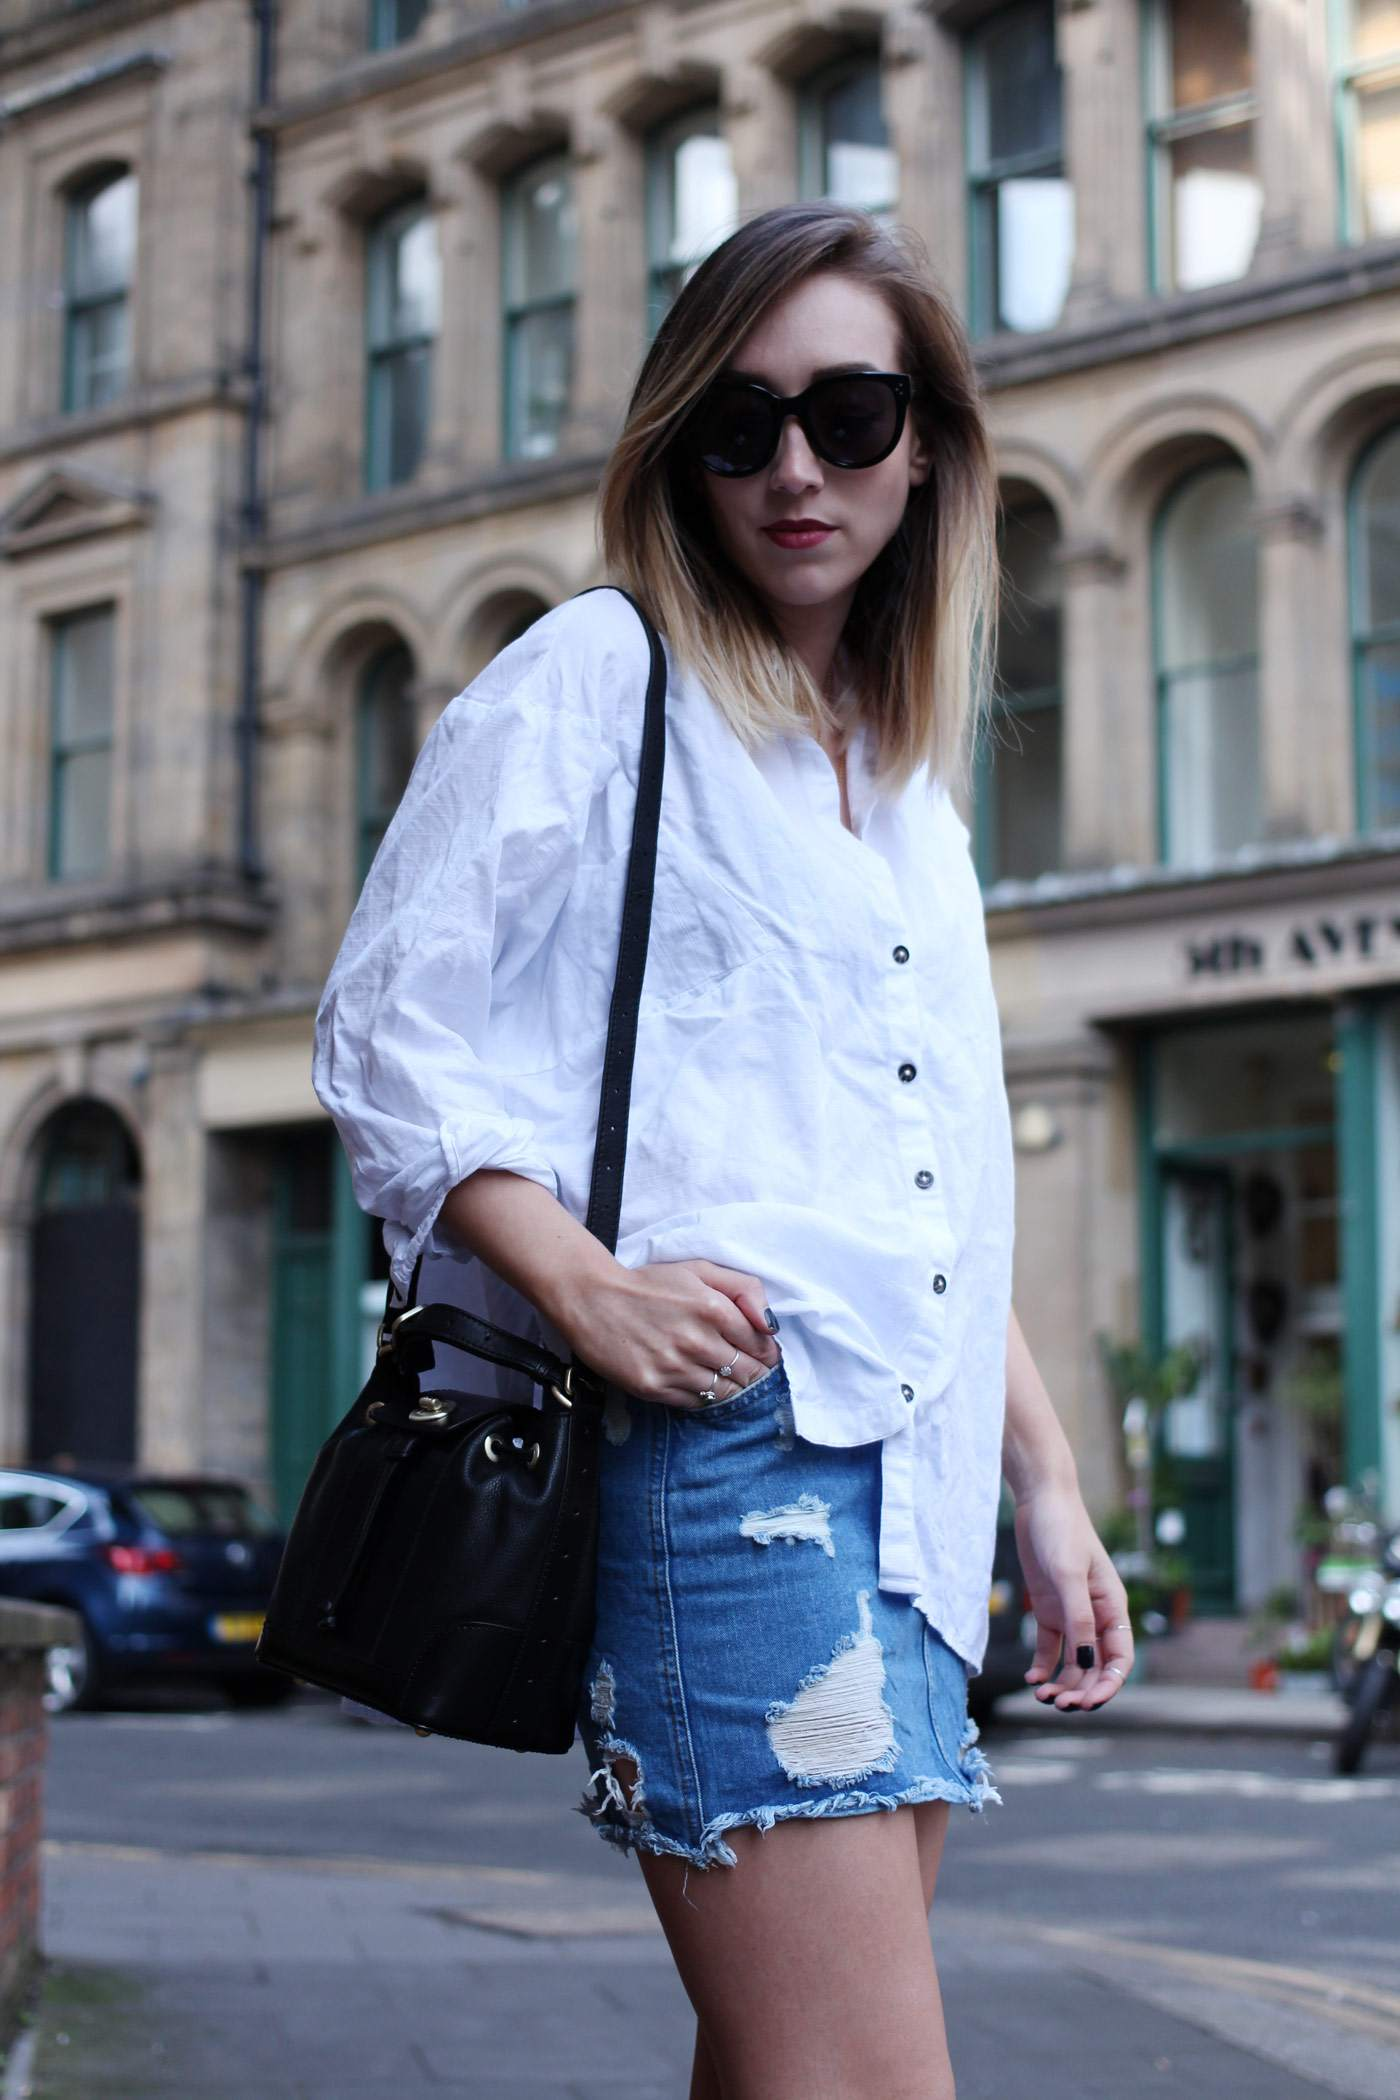 ego-boots-denim-skirt-oversized-white-shirt-radley-bag-5